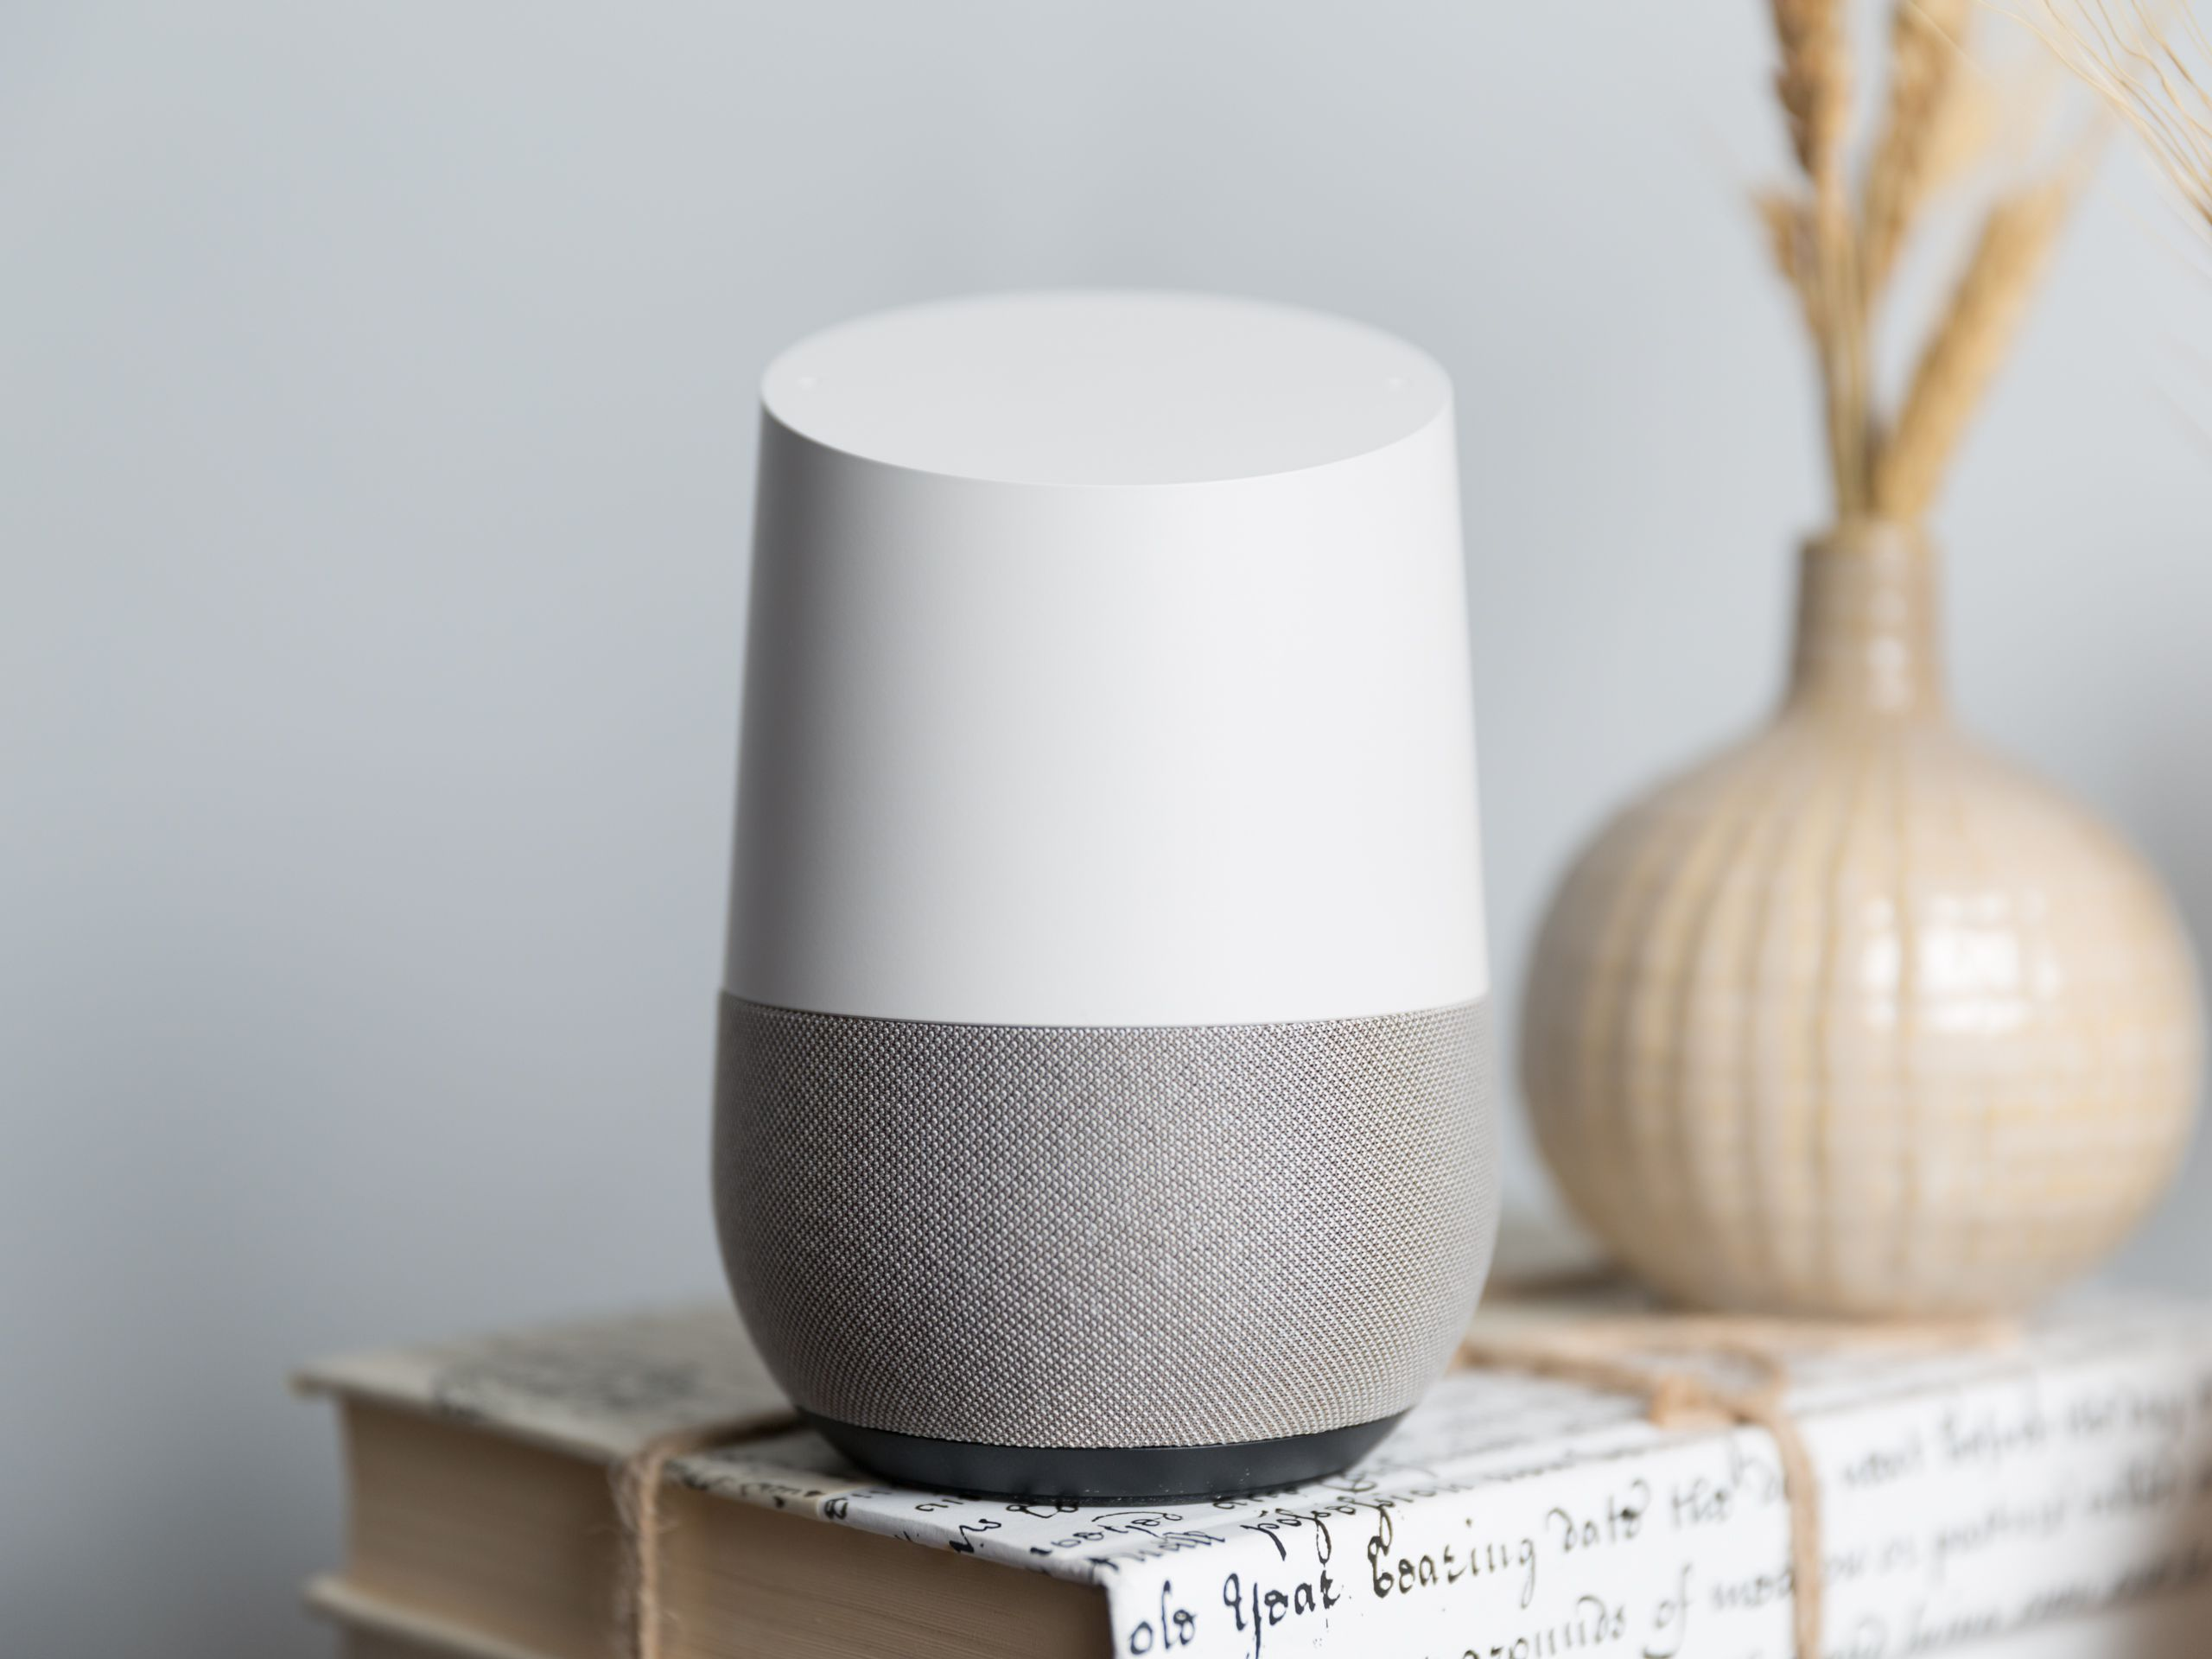 google-home-product-photos-19-1.jpg